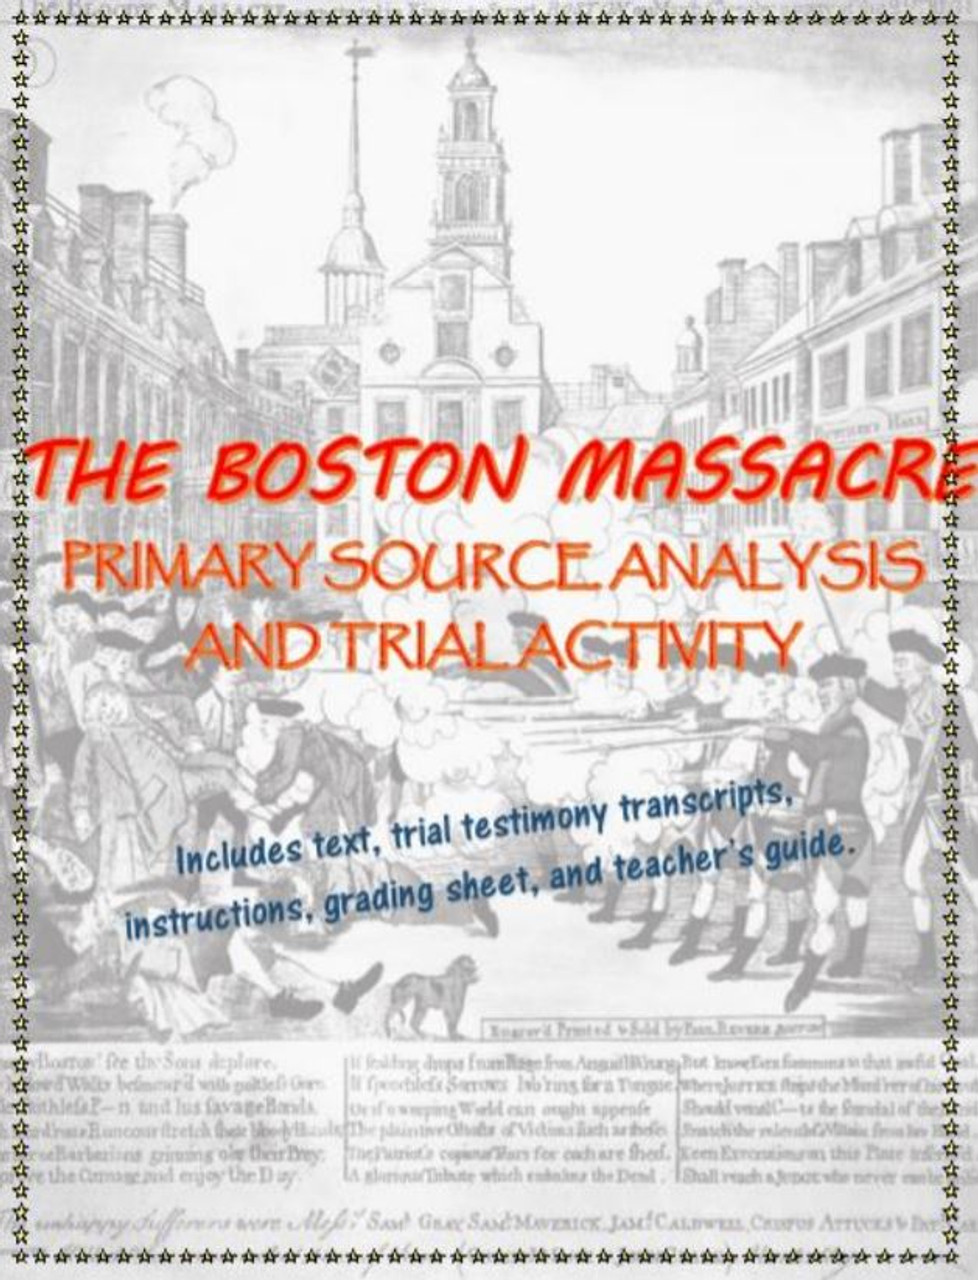 Boston Massacre Primary Source Analysis and Trial Activity, including text